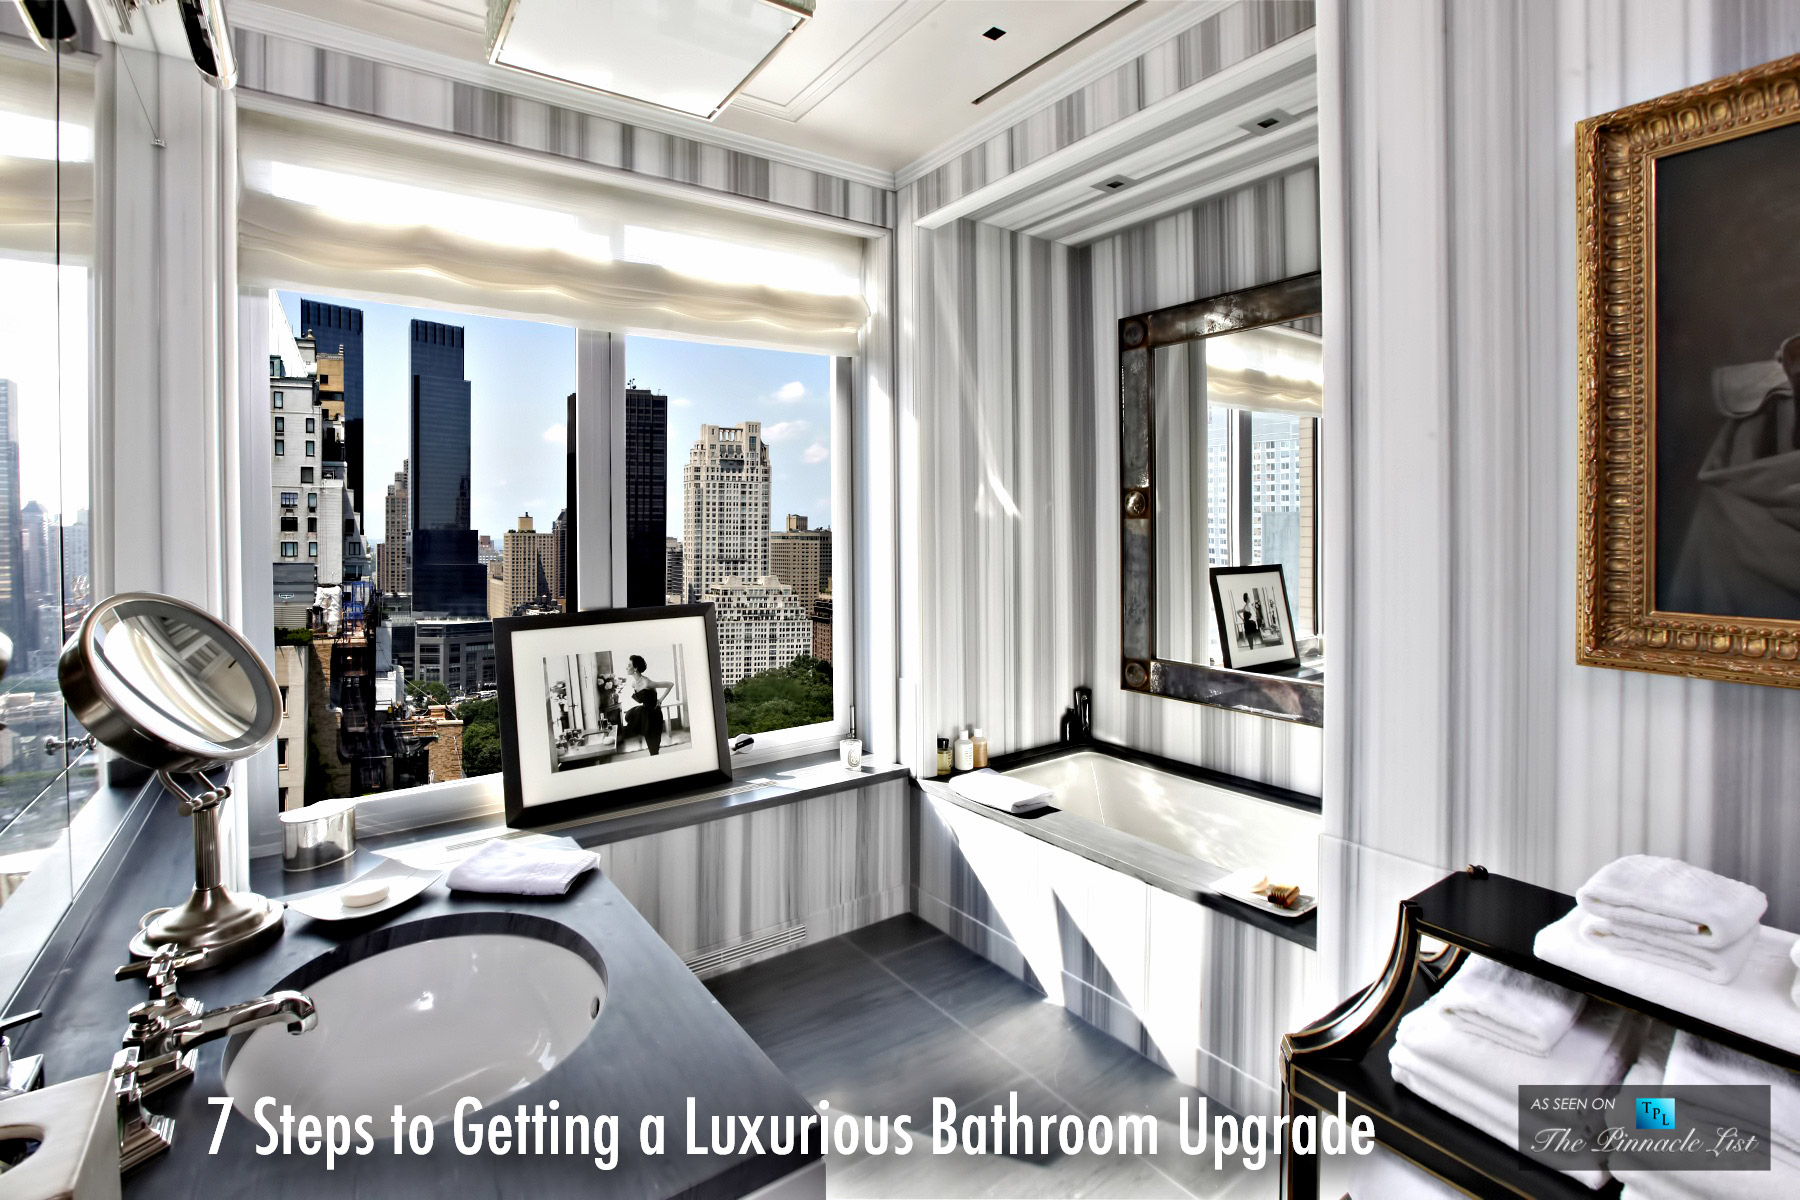 7 Steps to Getting a Luxurious Bathroom Upgrade